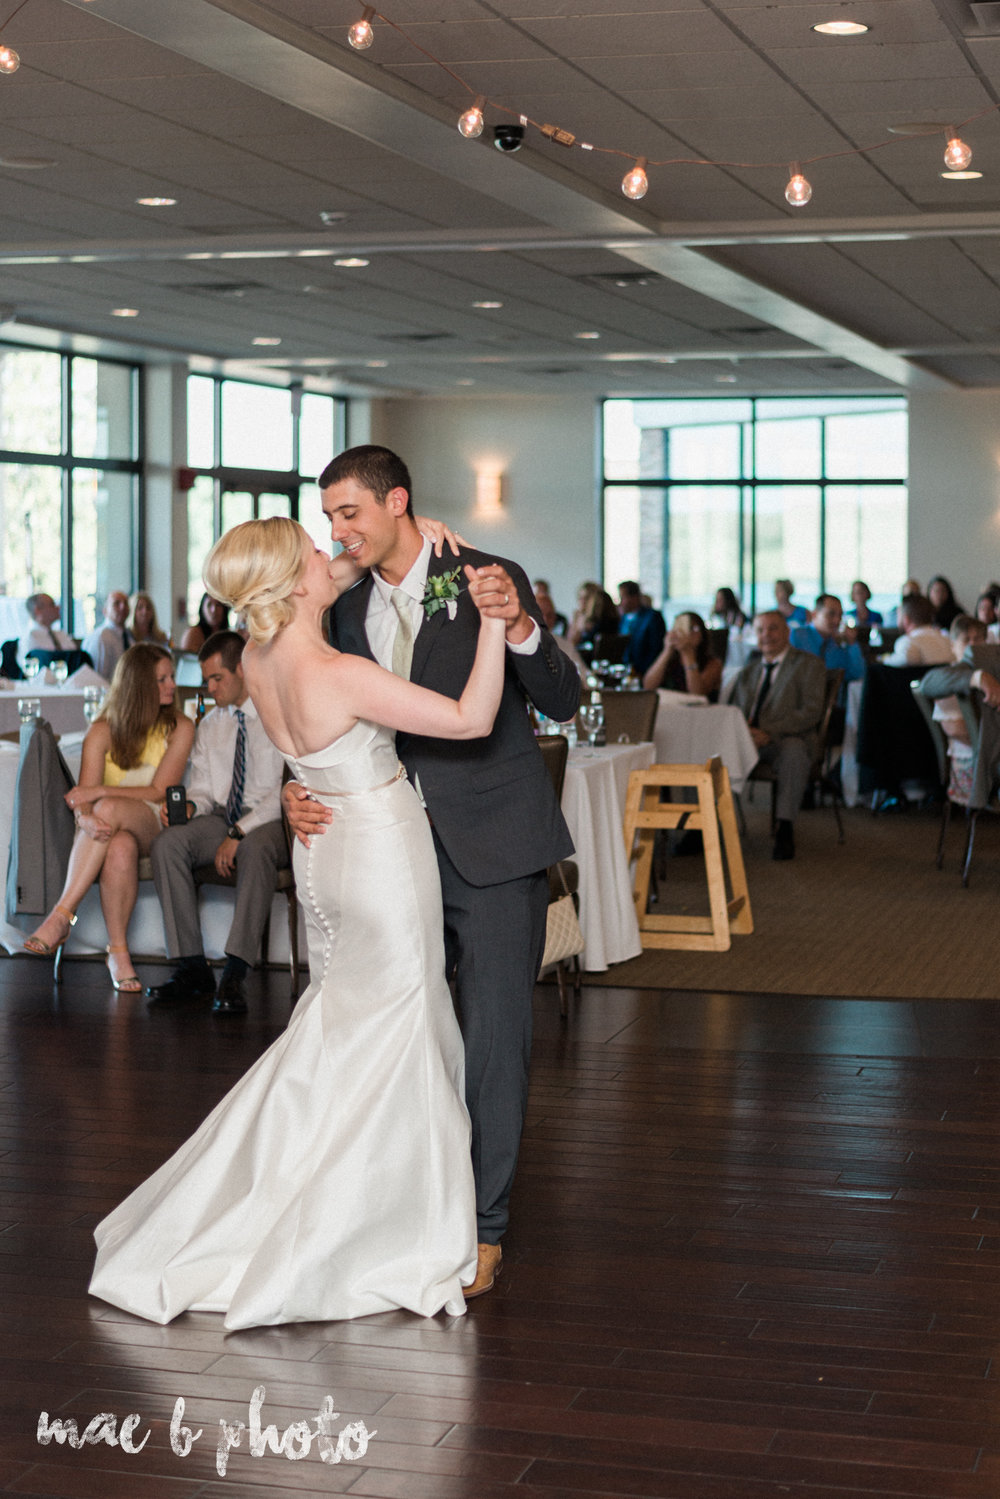 emily and michael's industrial chic summer country club wedding at the lake club in poland ohio photographed by cleveland wedding photographer mae b photo-114.jpg